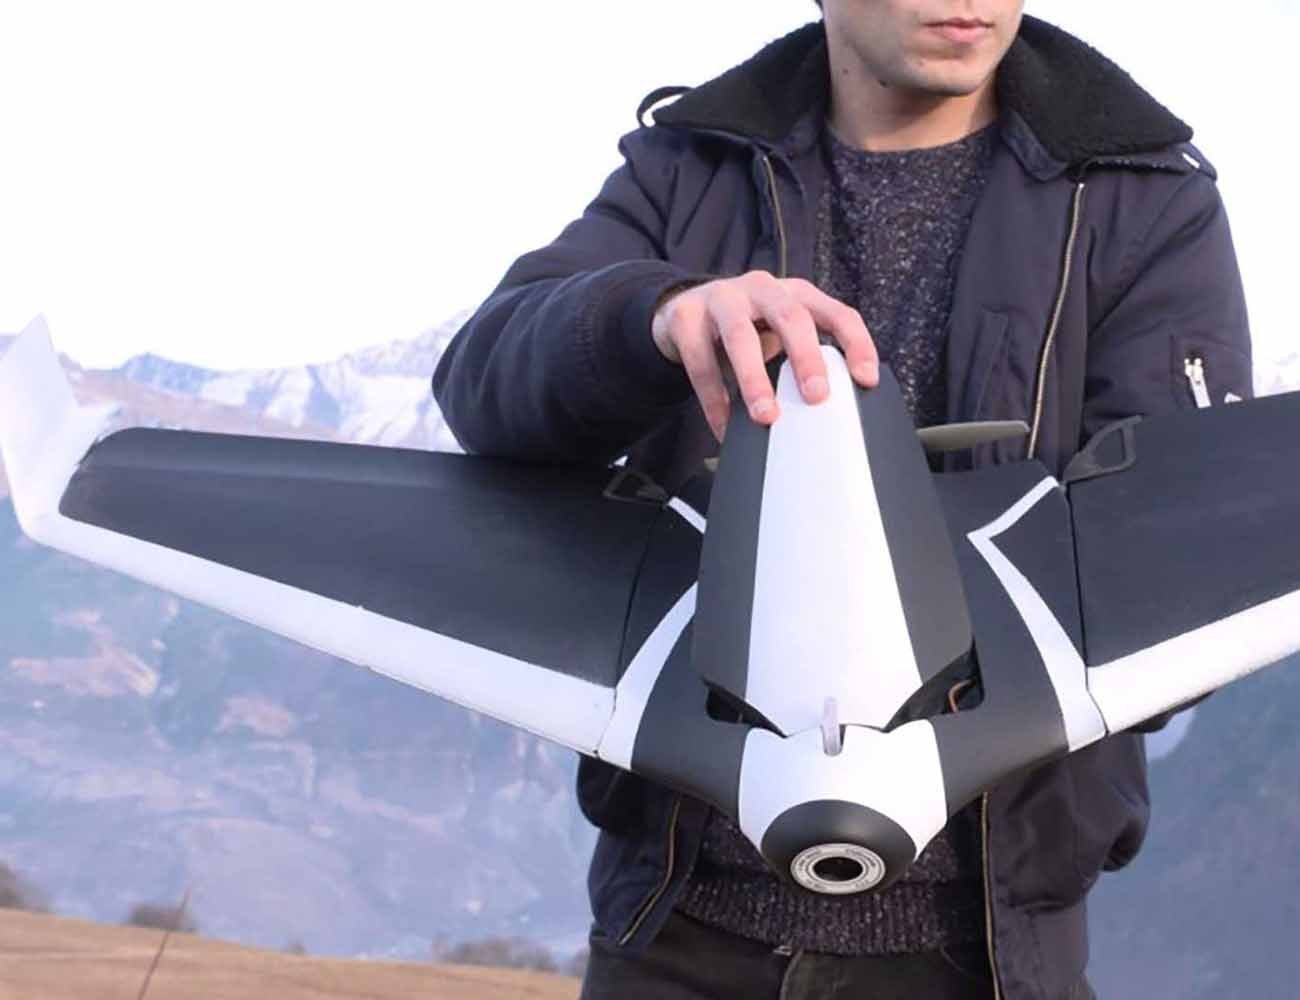 Disco by Parrot – First Ready to Fly Wing-Shaped Drone